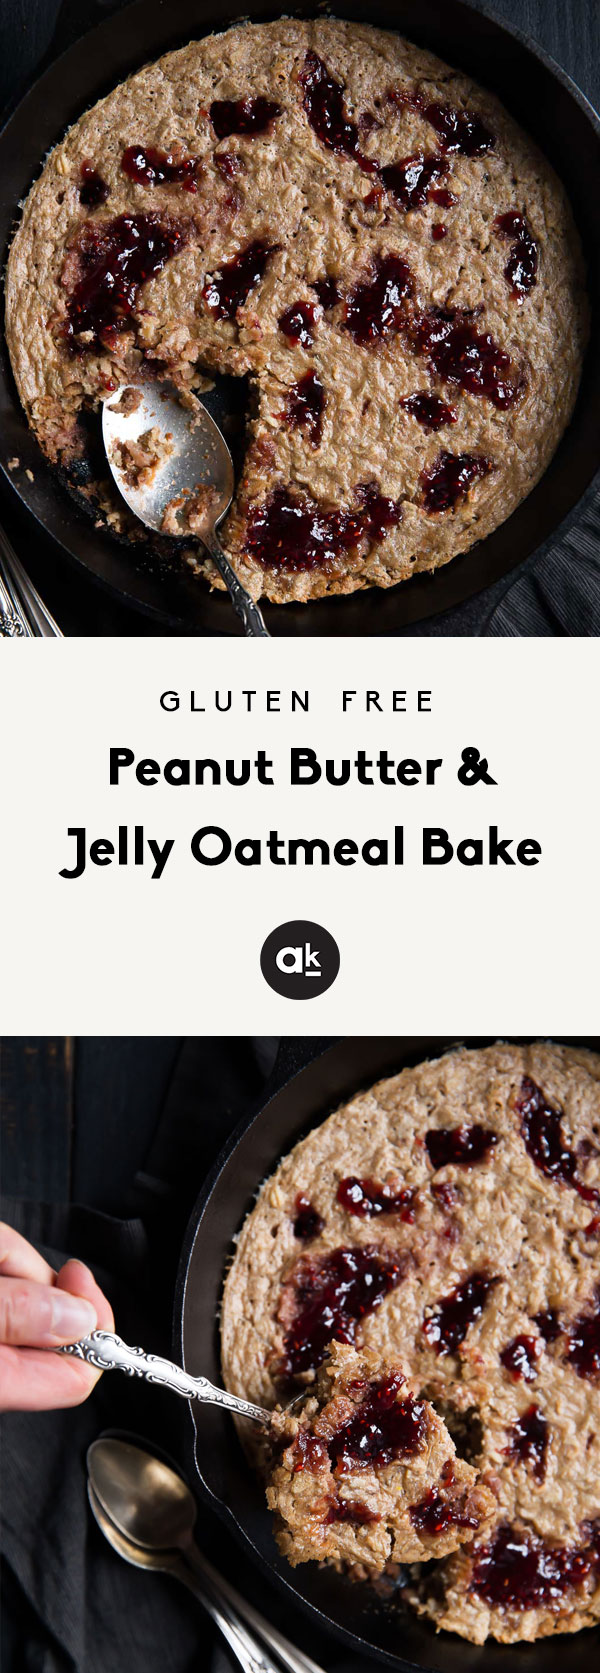 Easy to make peanut butter and jelly oatmeal bake that's naturally gluten free and dairy free. The perfect way to enjoy a childhood favorite for breakfast. Over 8g protein per serving. Great for meal prep!